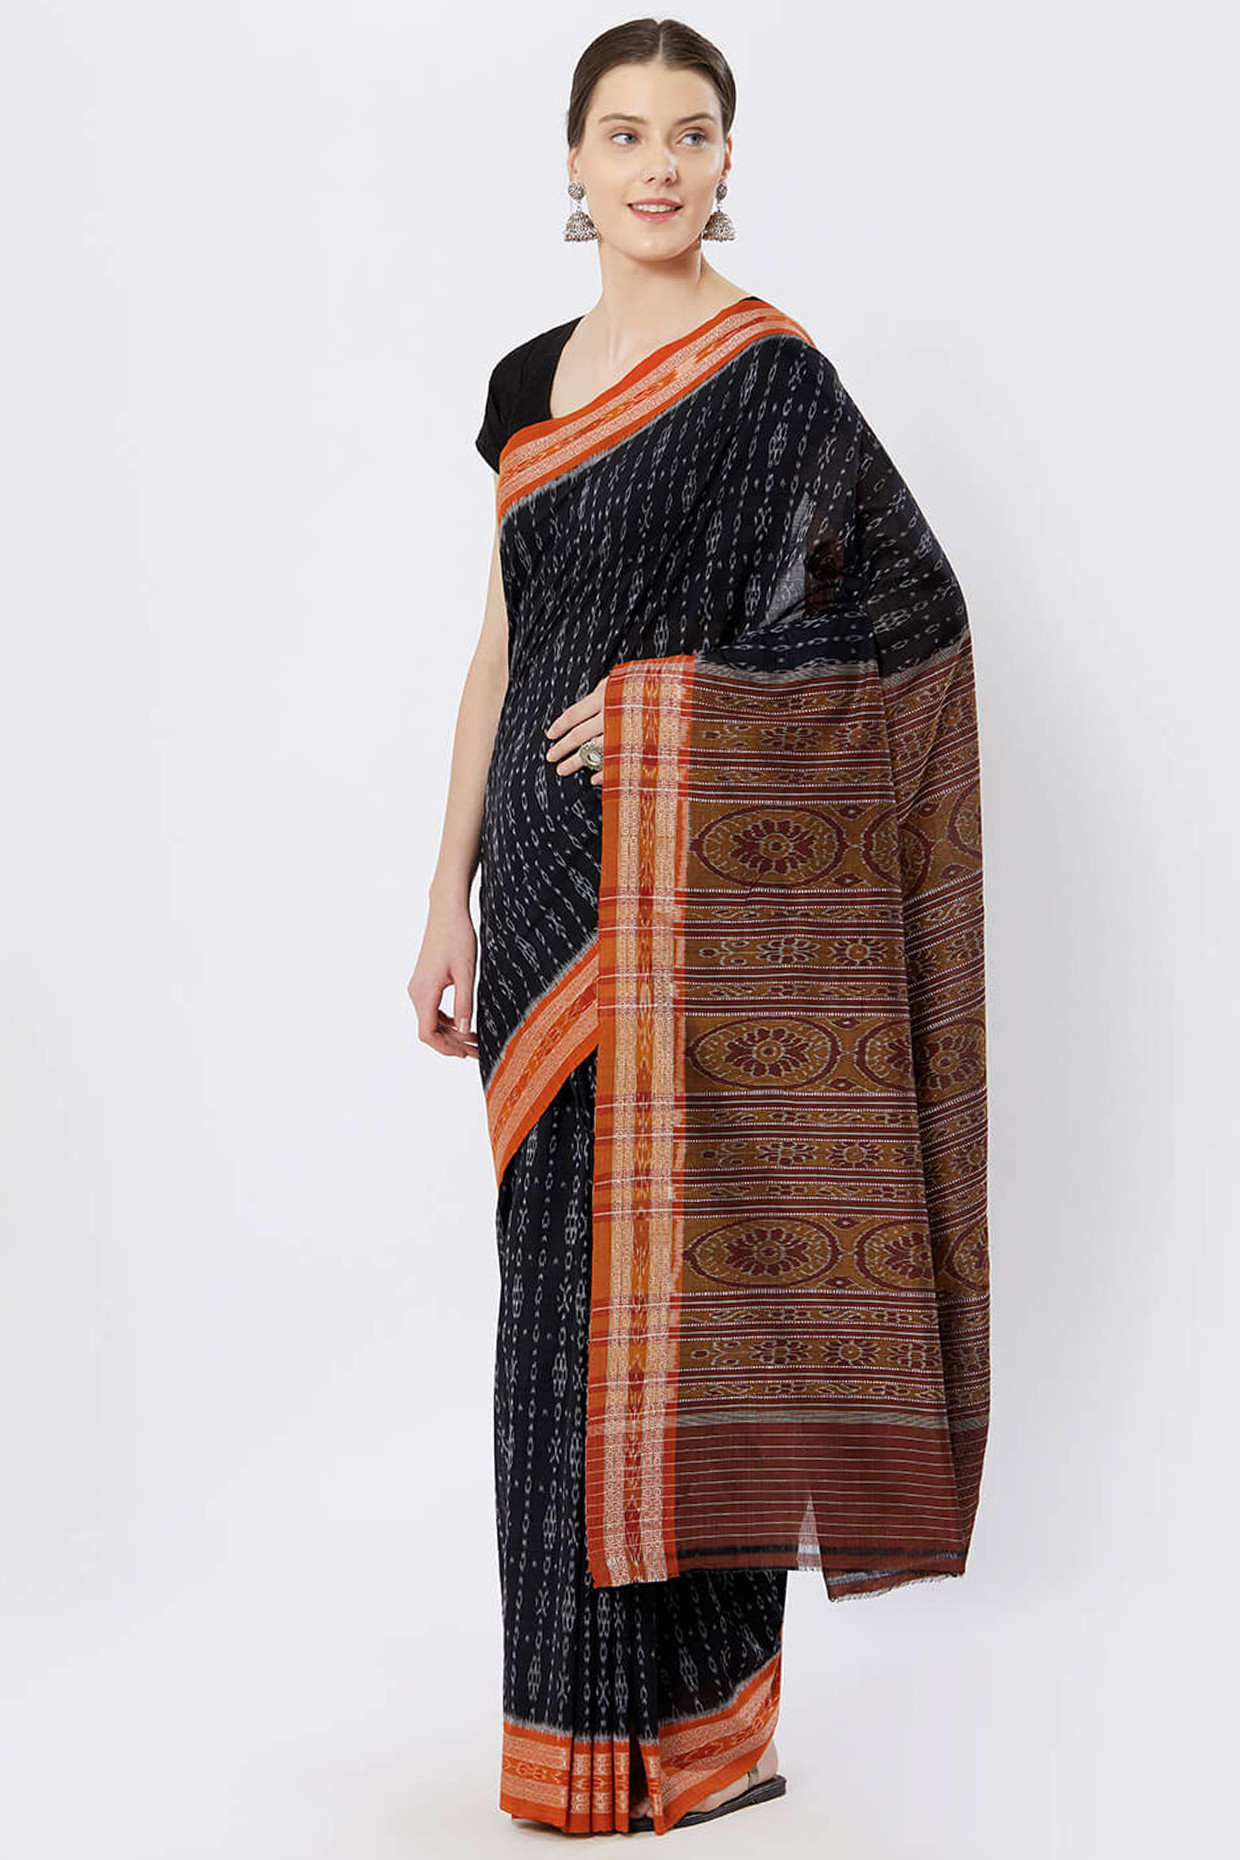 Black Sambalpuri Dual Ikat Cotton Saree by Crafts Collection